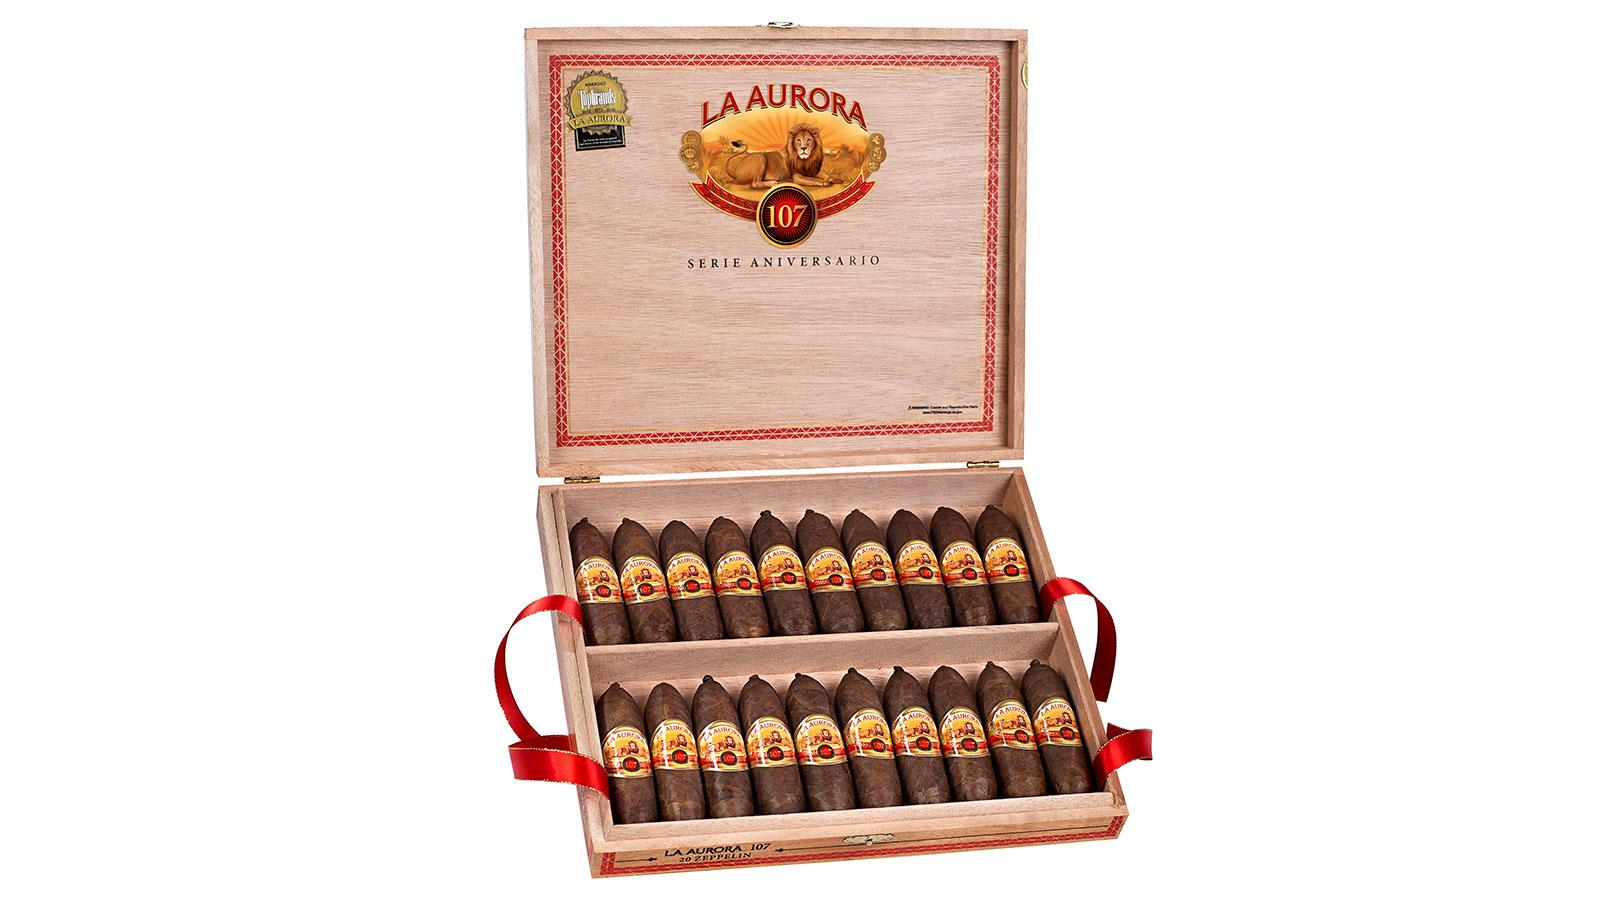 New 107 Zeppelin Perfectos Coming To U.S. From La Aurora